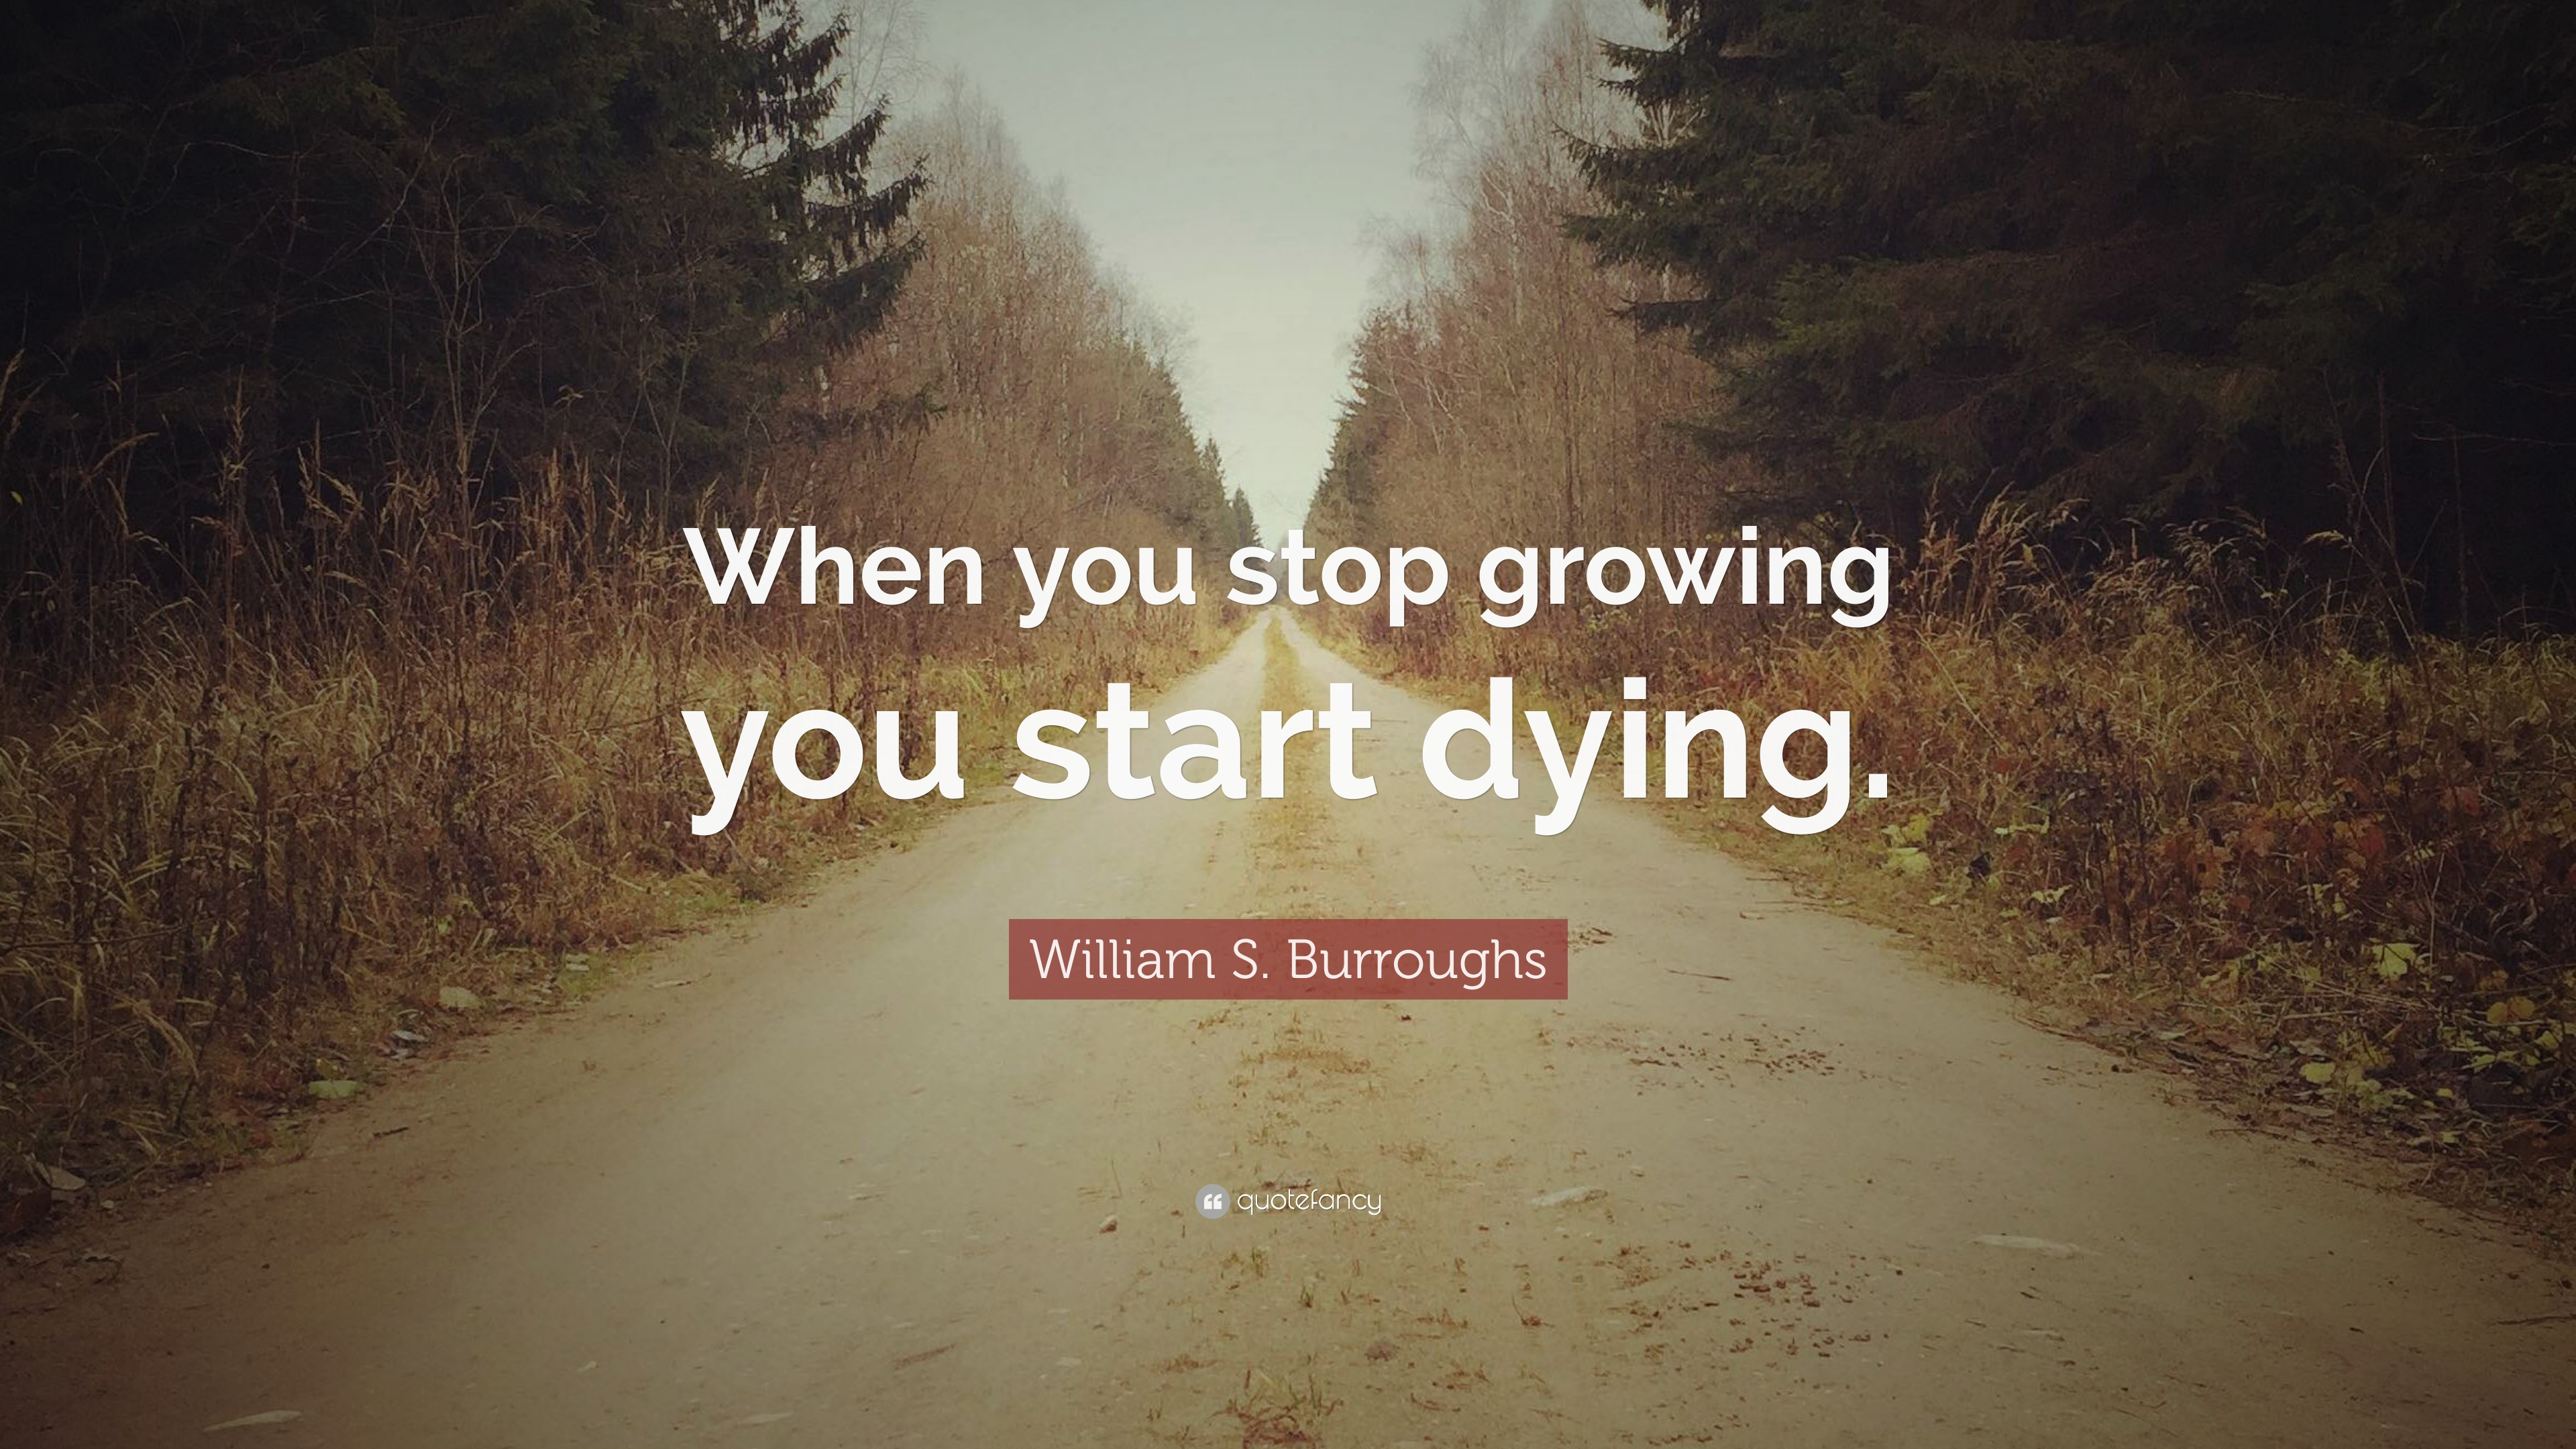 William S Burroughs Quote When You Stop Growing You Start Dying